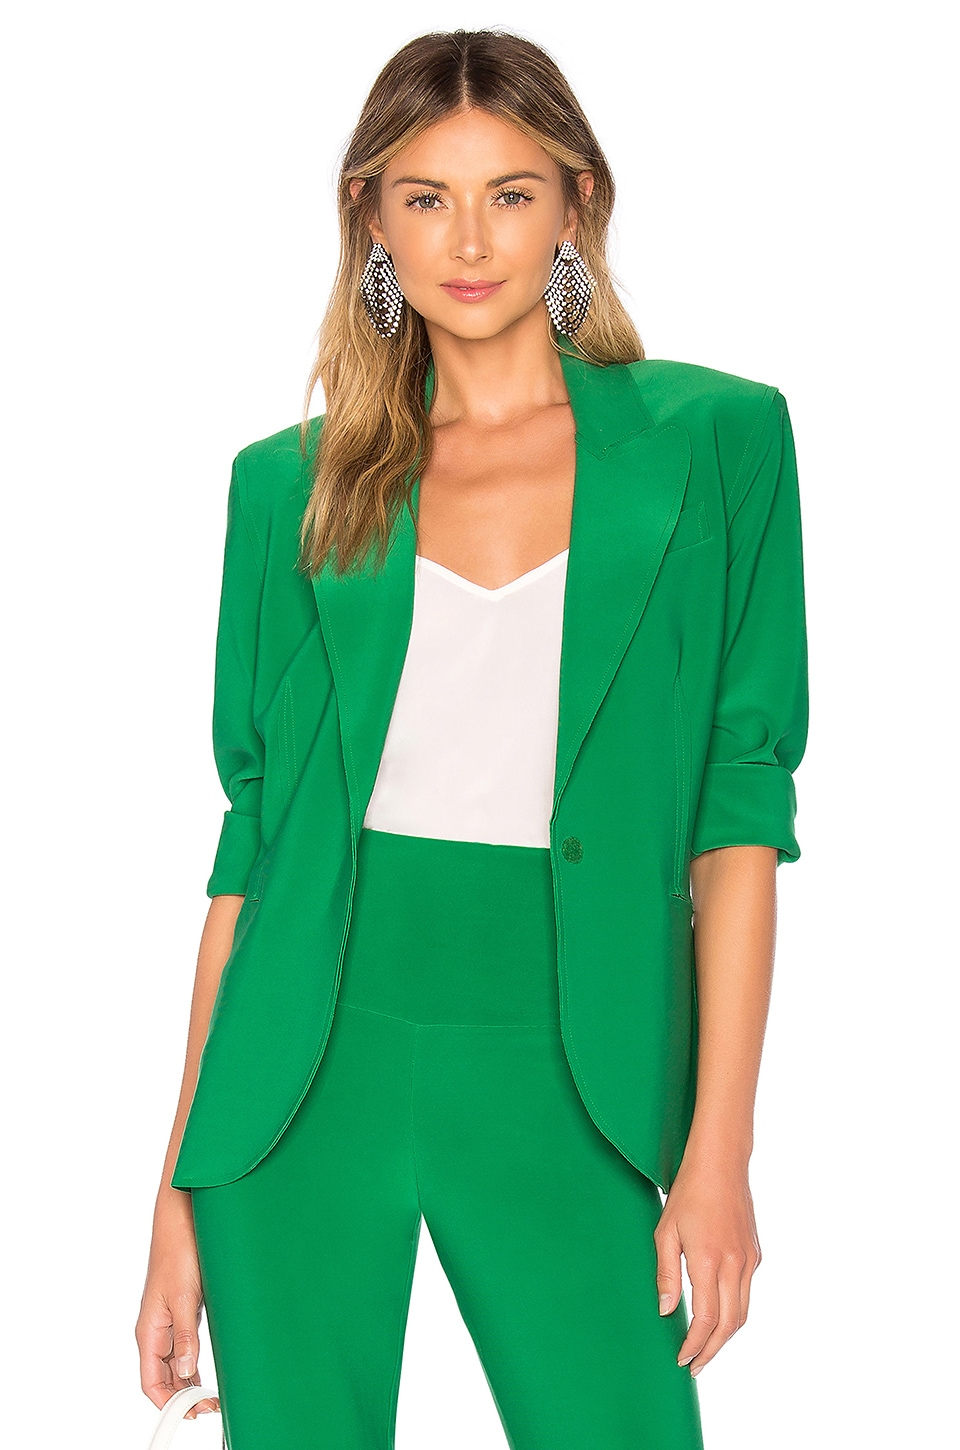 Norma Kamali X REVOLVE Single Breasted Jacket in Kelly Green